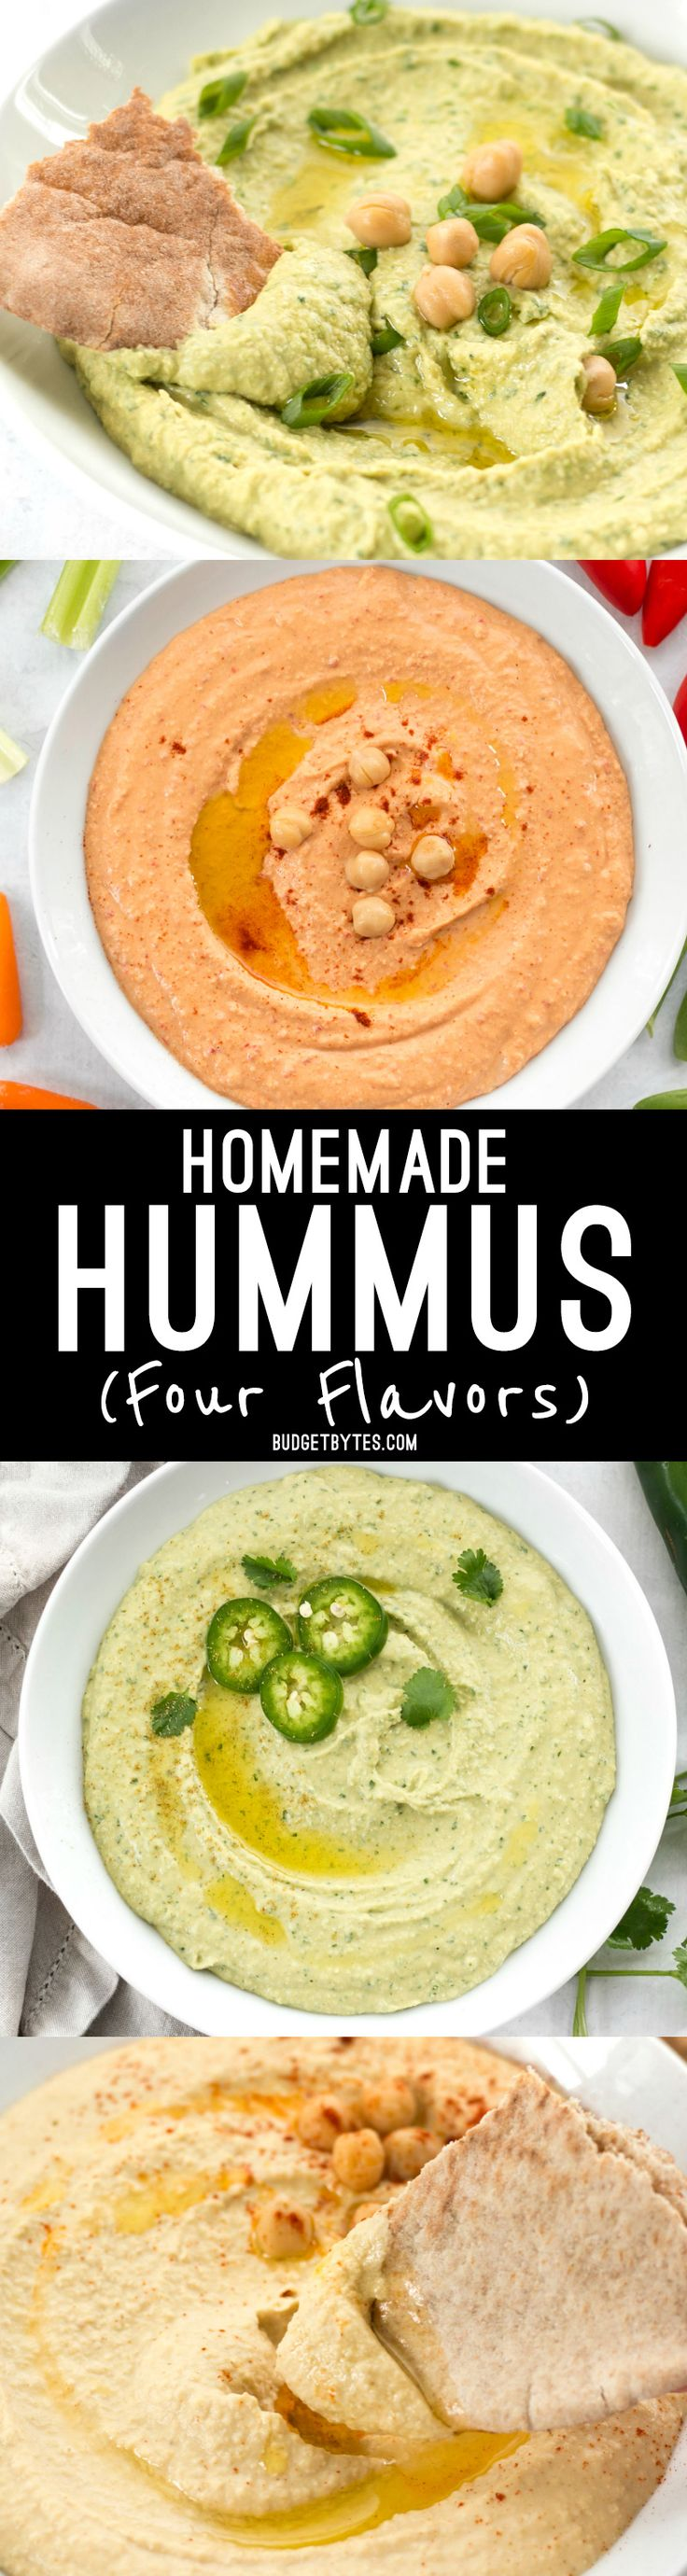 Homemade hummus is quick, easy, and inexpensive, and can be made with several different flavor add-ins. Here are four delicious flavors to try. @budgetbytes